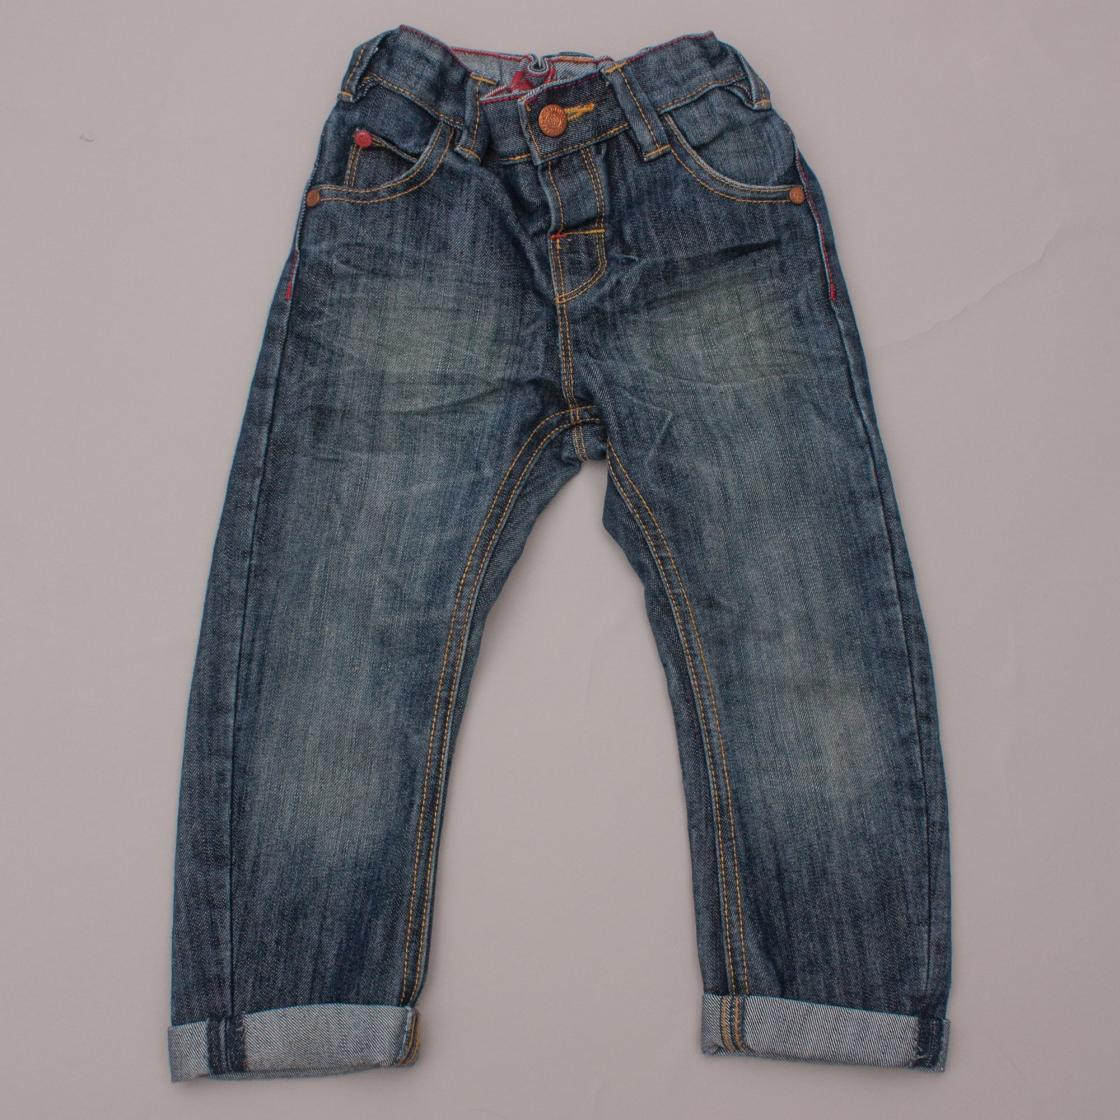 Next Distressed Jeans